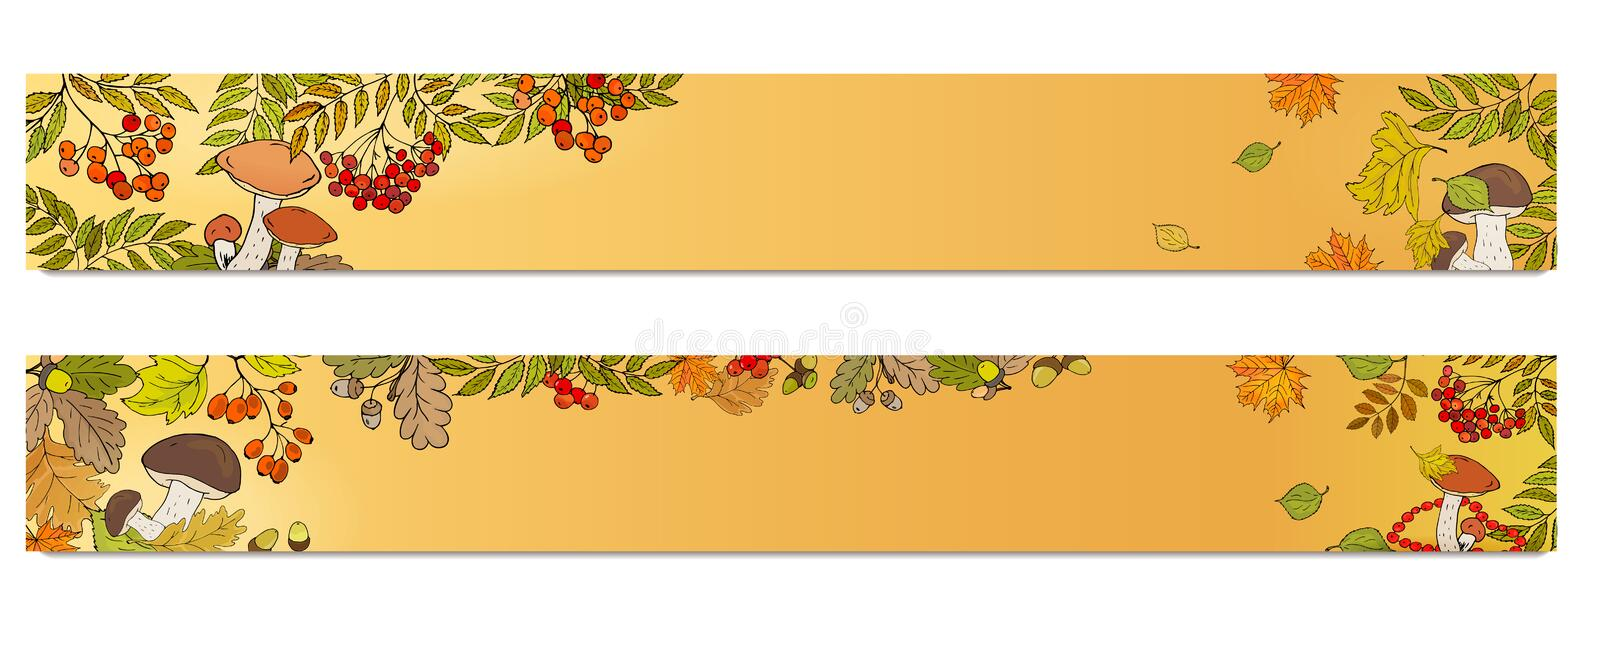 Horizontal banners with red rowan berries, mushrooms and leaves. Autumn theme royalty free illustration